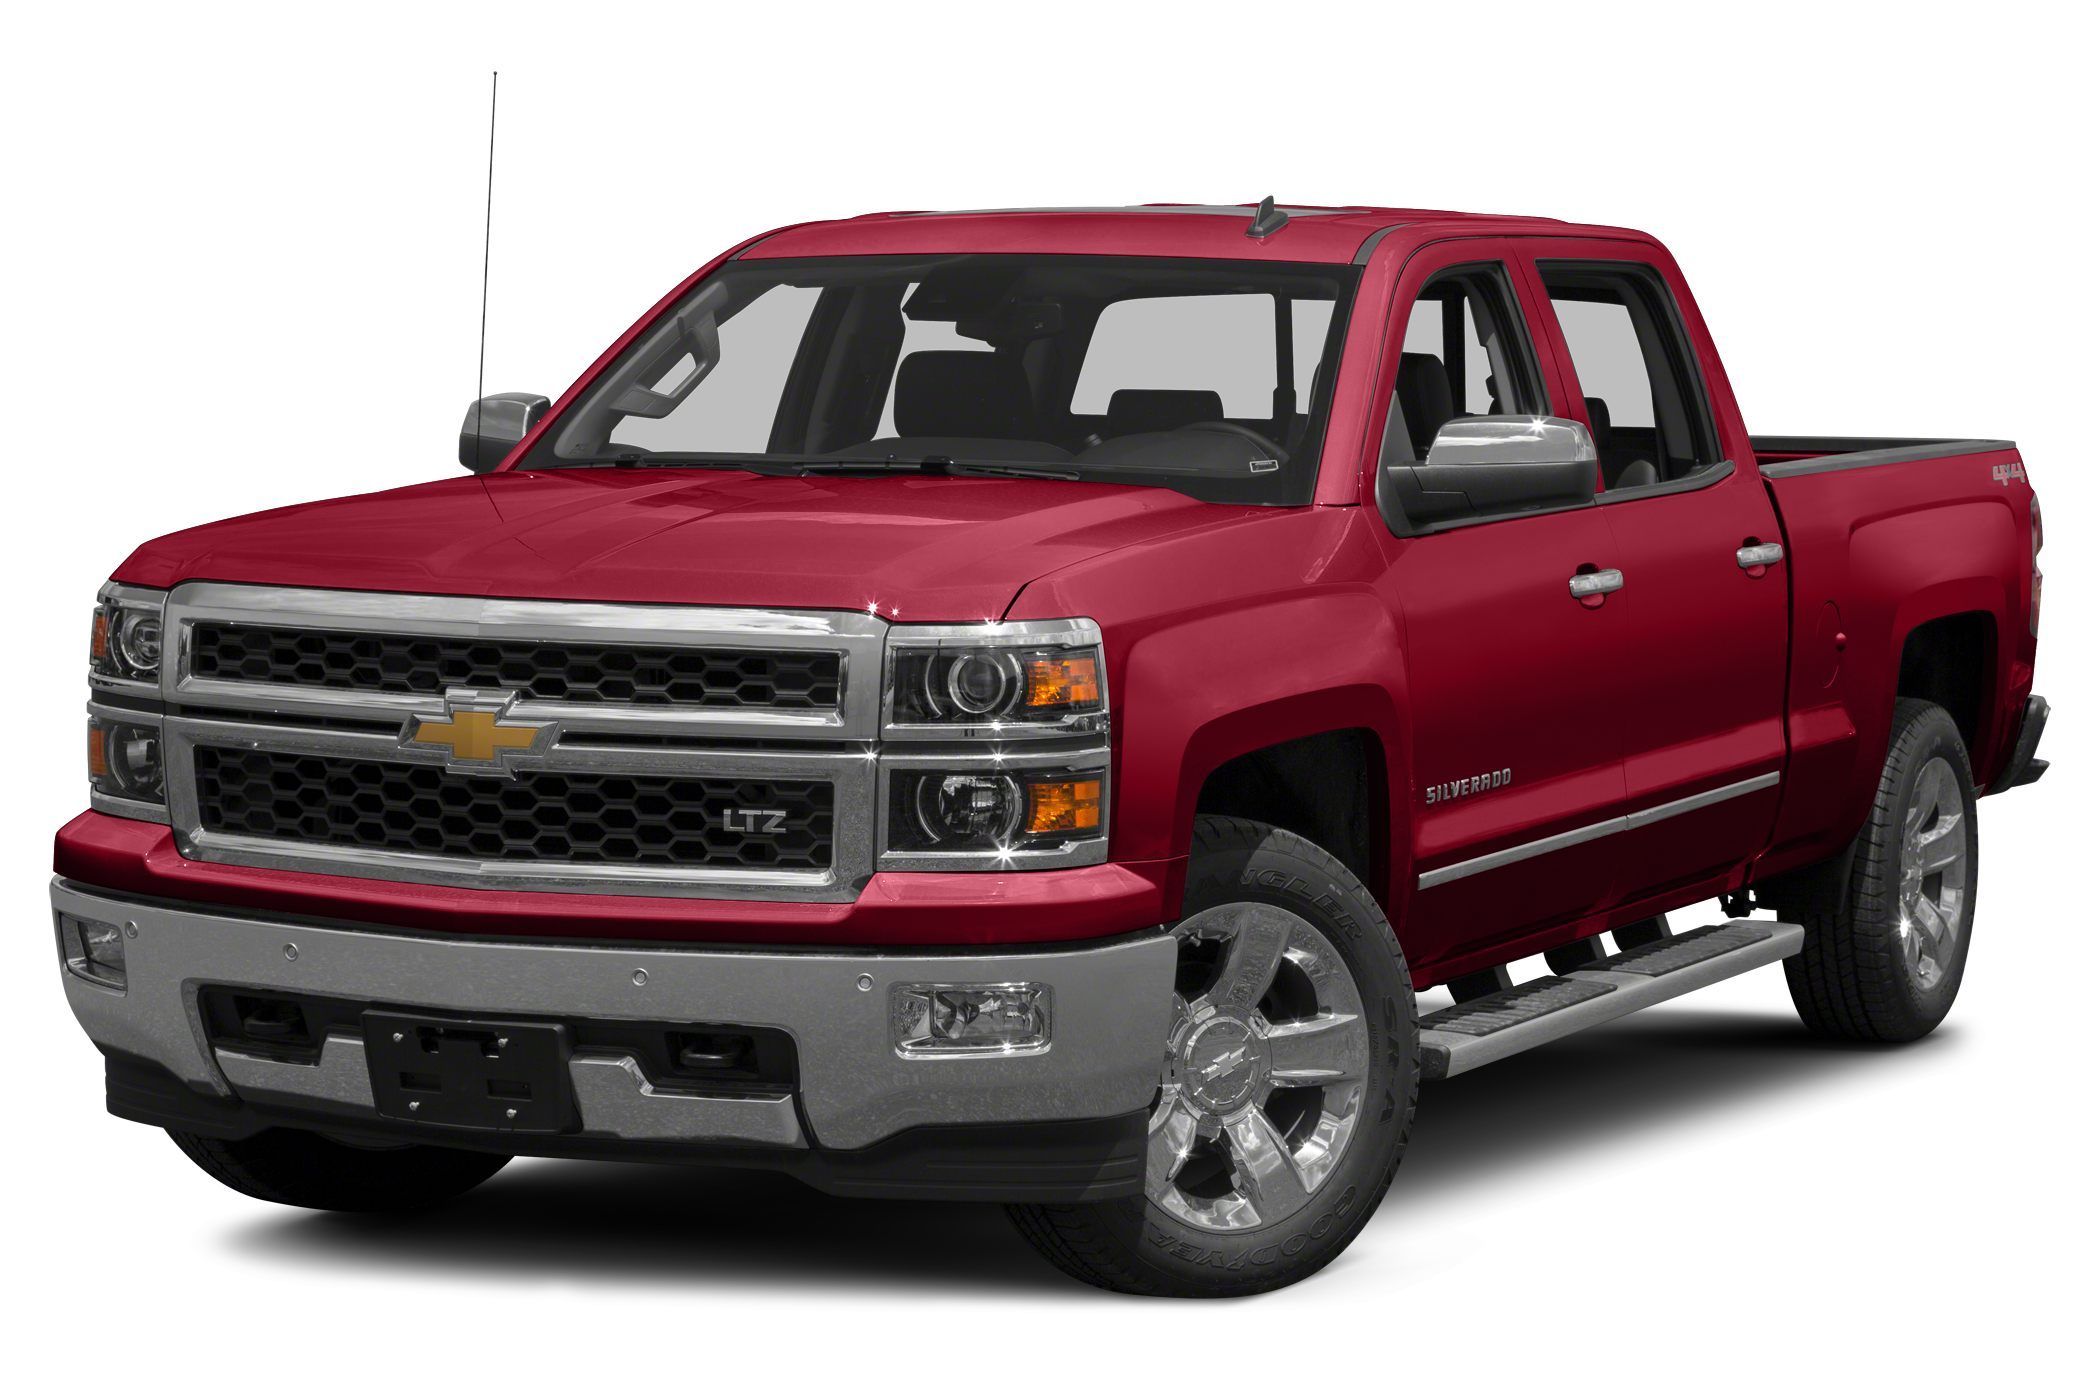 2014 Chevrolet Silverado 1500 1LT Proudly serving manatee county for over 60 years offering Cars